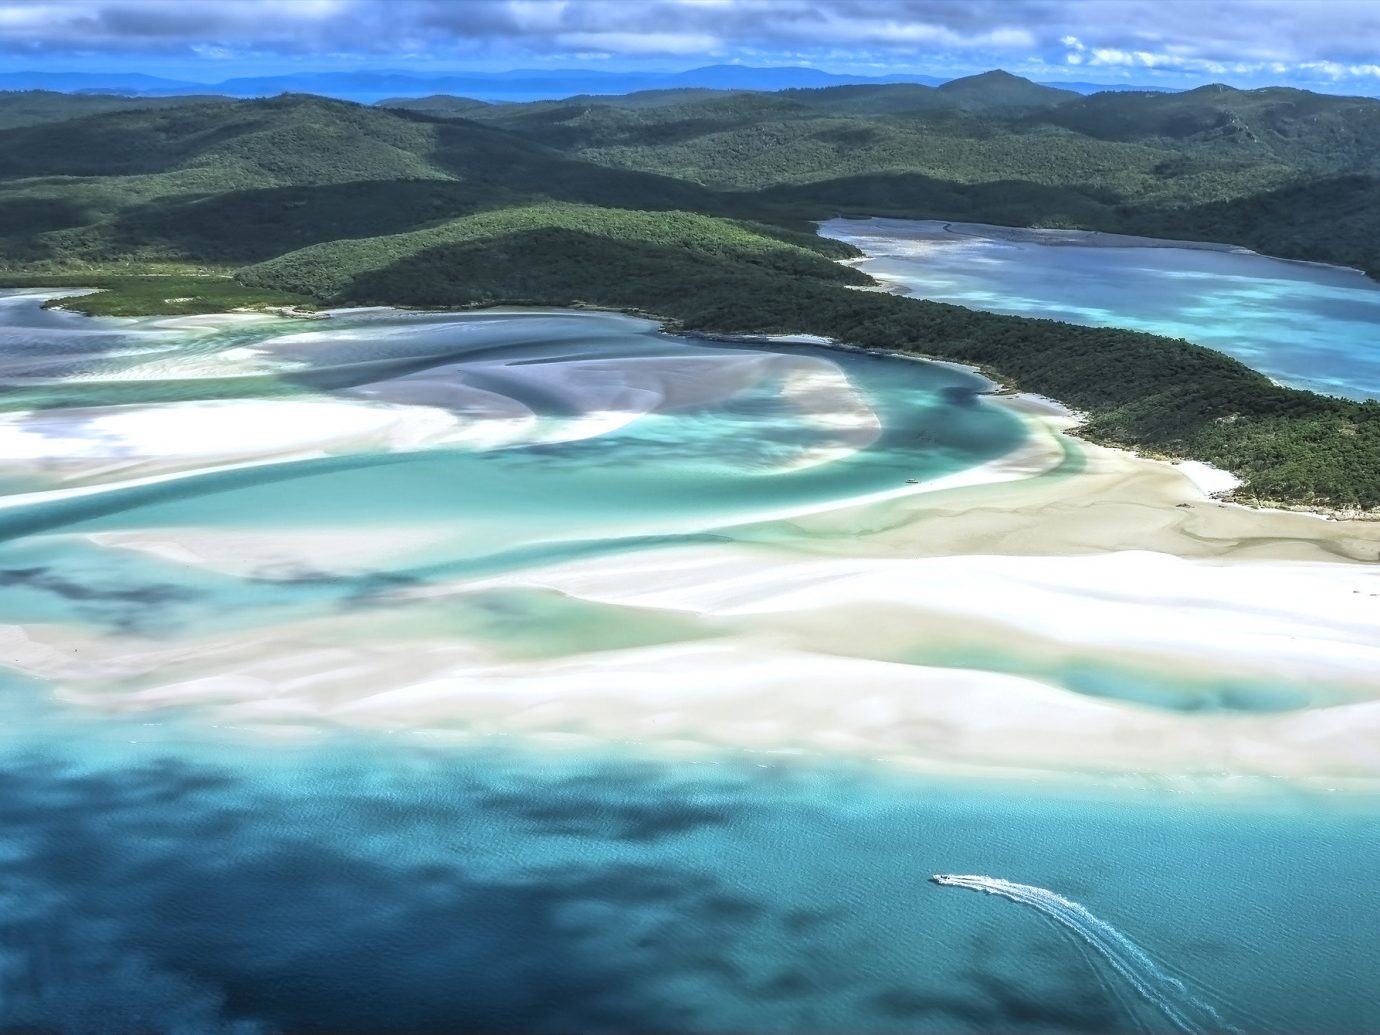 outdoor water coastal and oceanic landforms water resources Nature archipelago Sea inlet Ocean aerial photography Island shore bay wave Lagoon Coast sky wind wave watercourse river delta computer wallpaper atoll promontory reef day